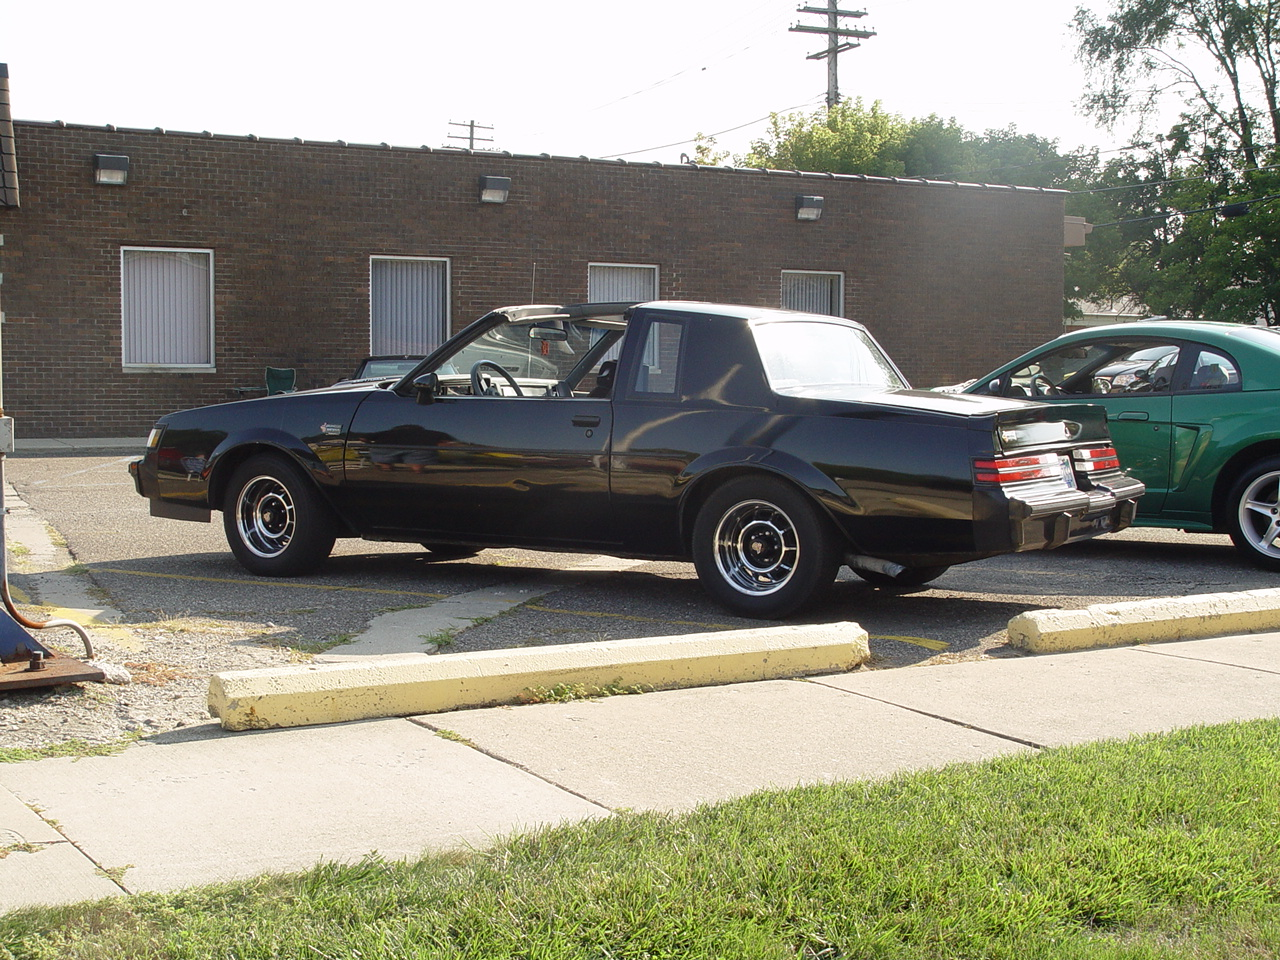 T Top Buick Grand National Buick Turbo Regal